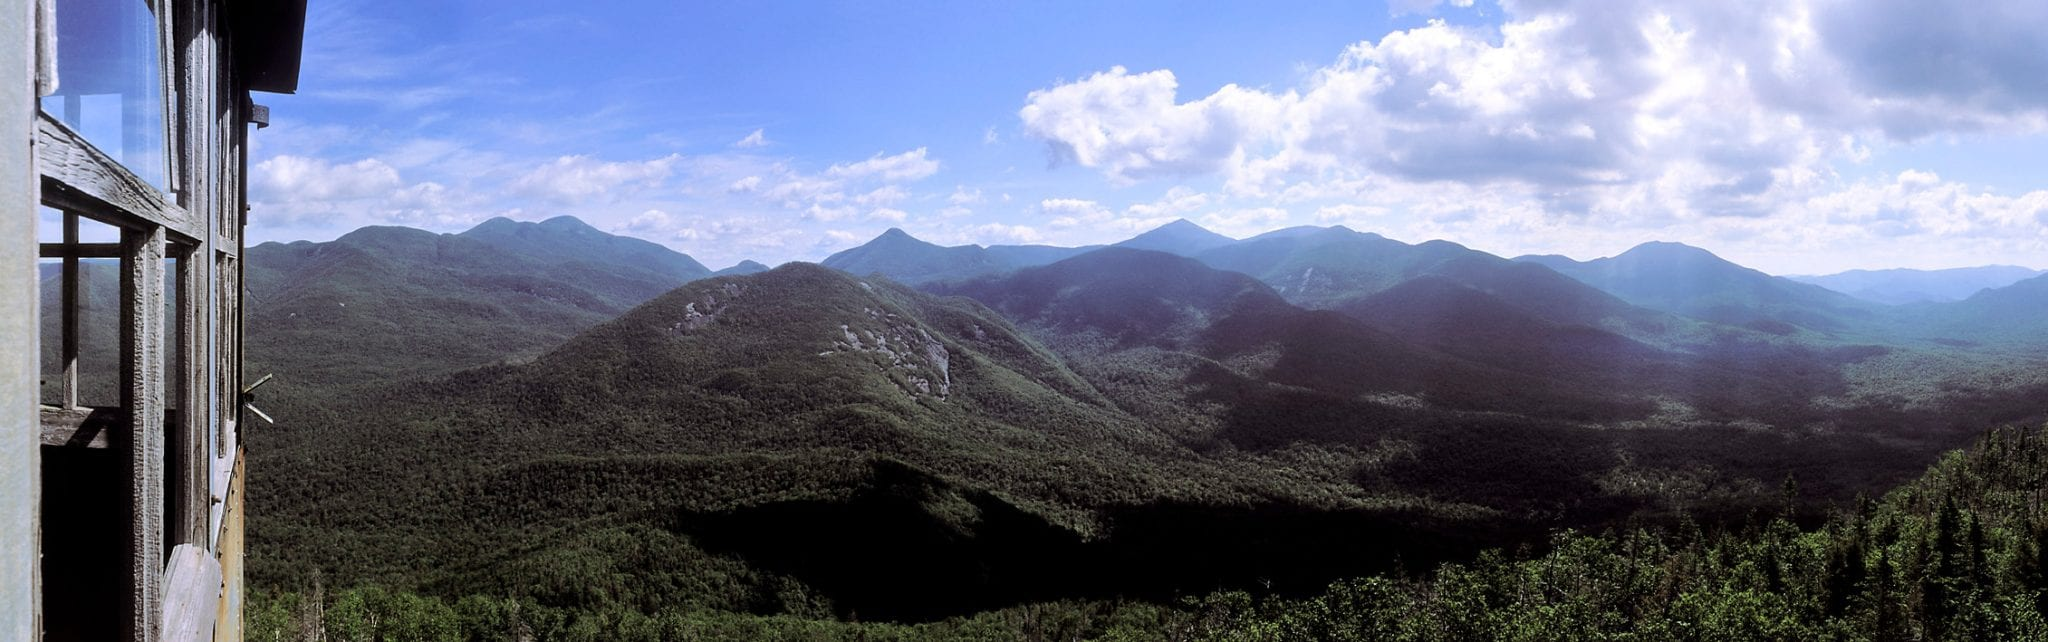 View of the High Peaks from Mount Adams. Copyright photo by Carl Heilman II.